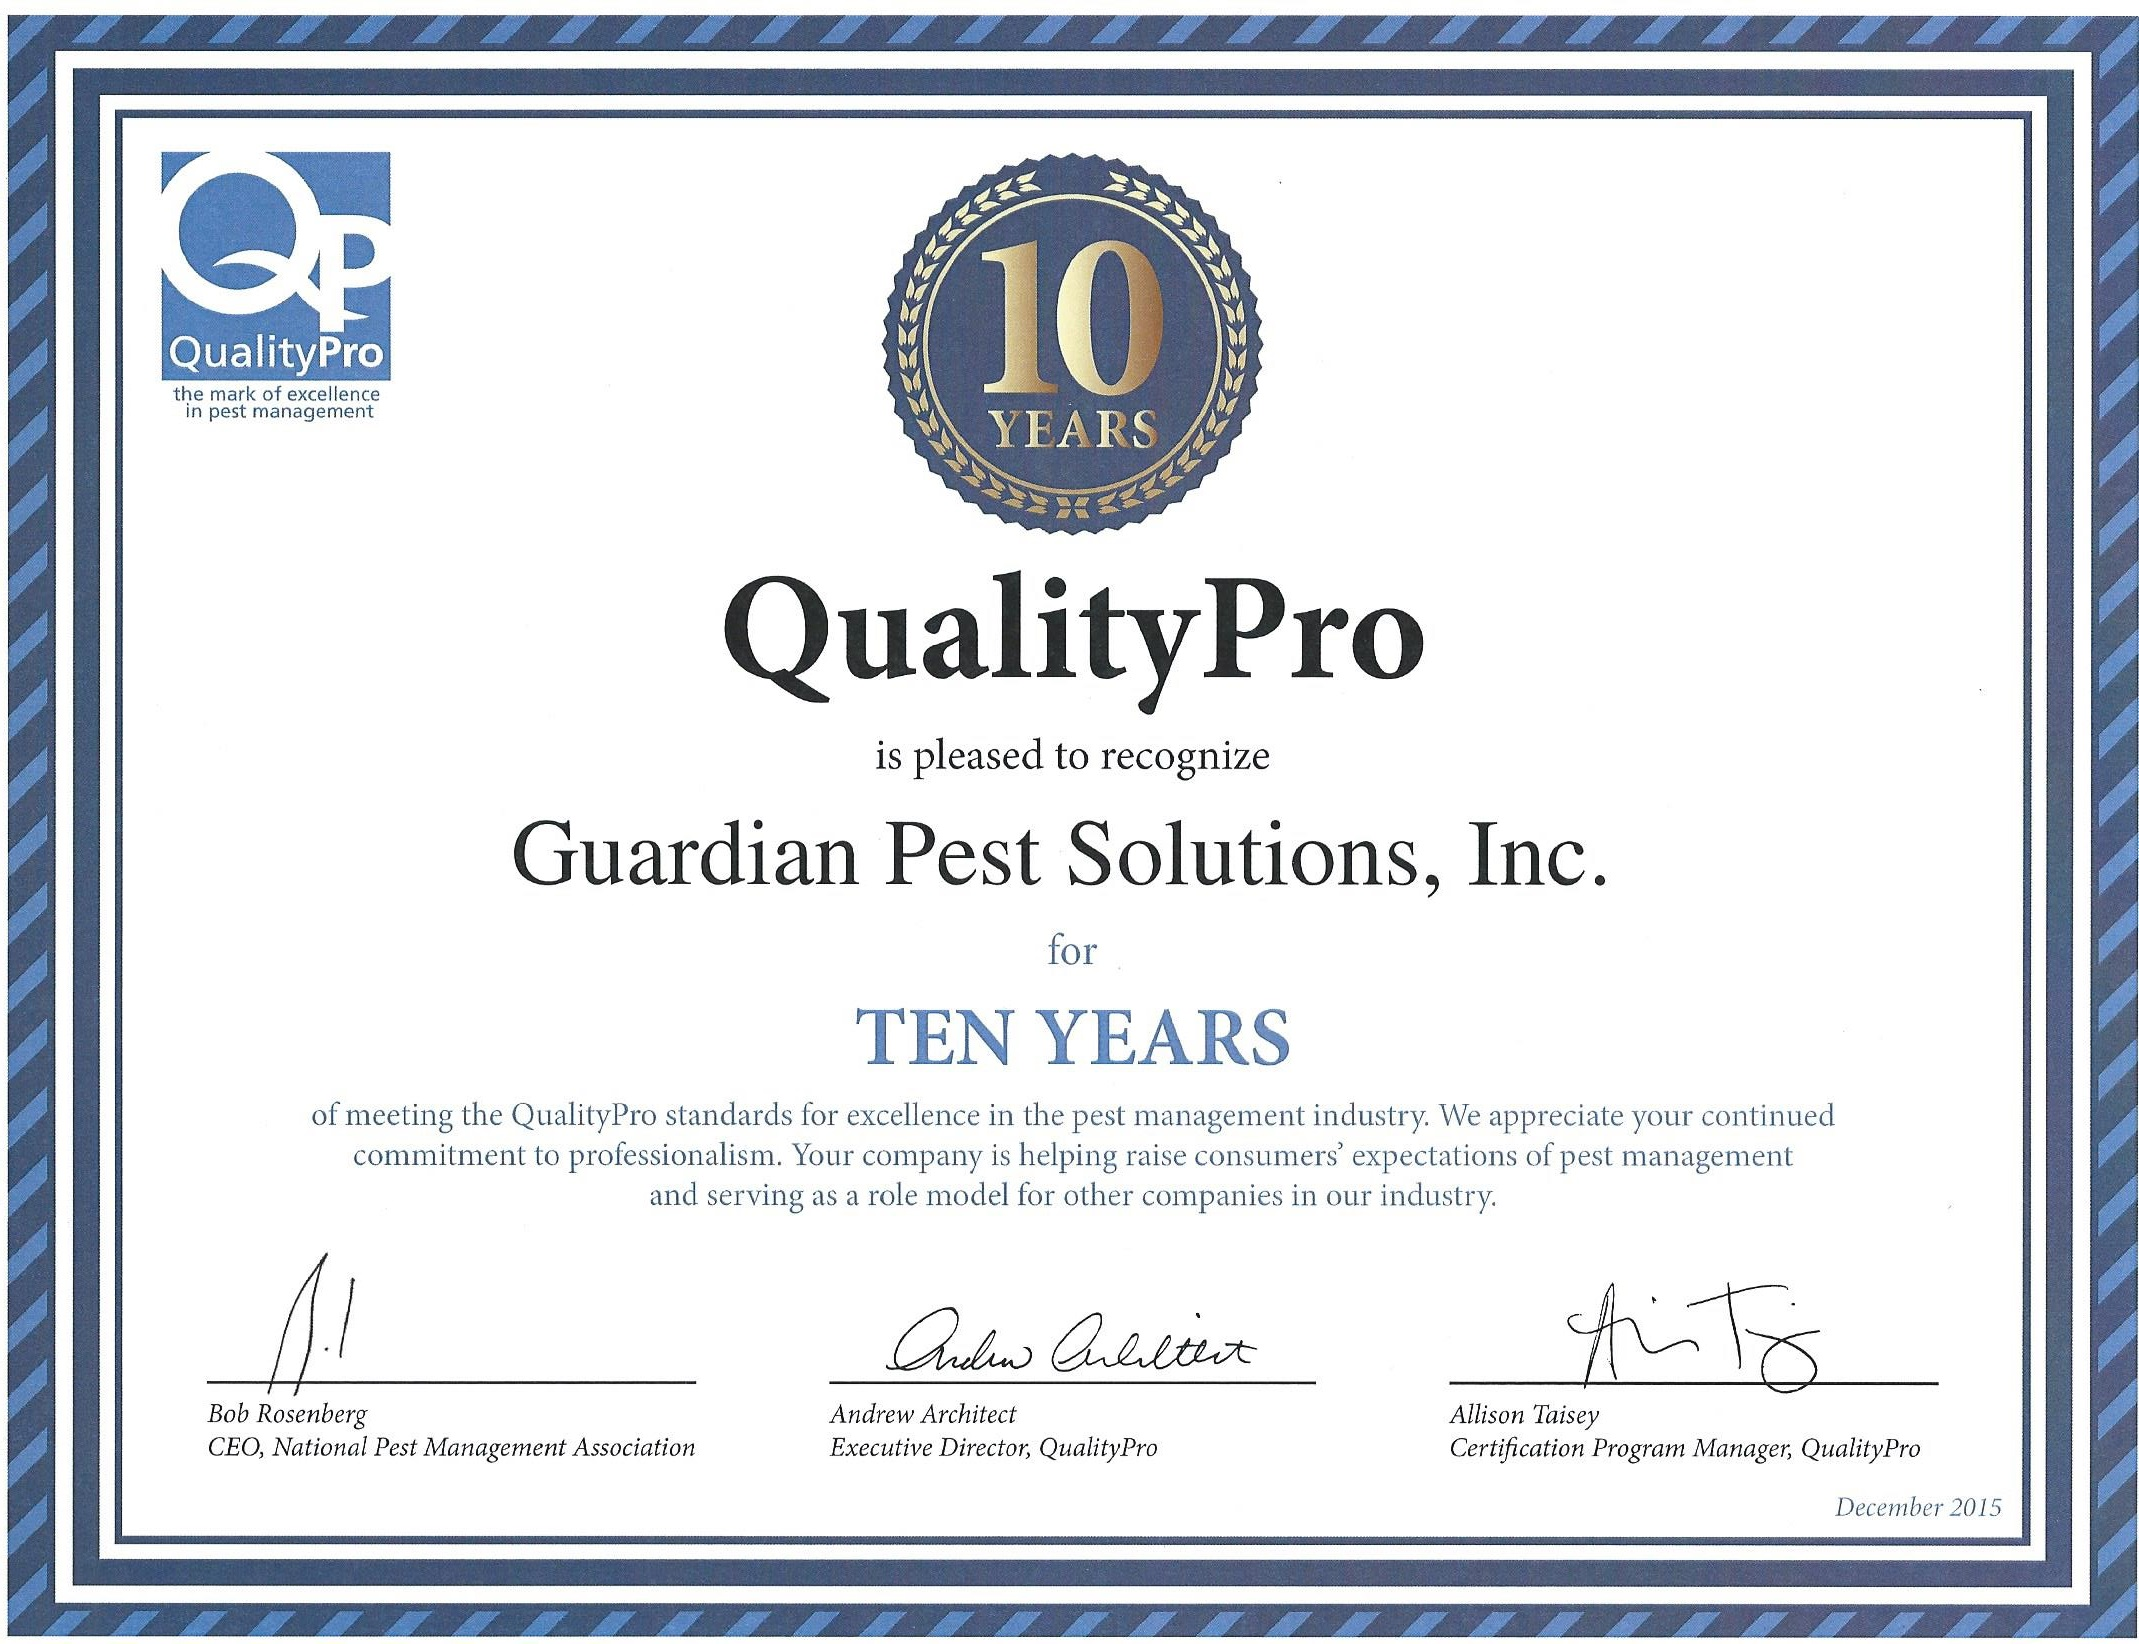 Why Our Pest Control Company Guardian Pest Solutions